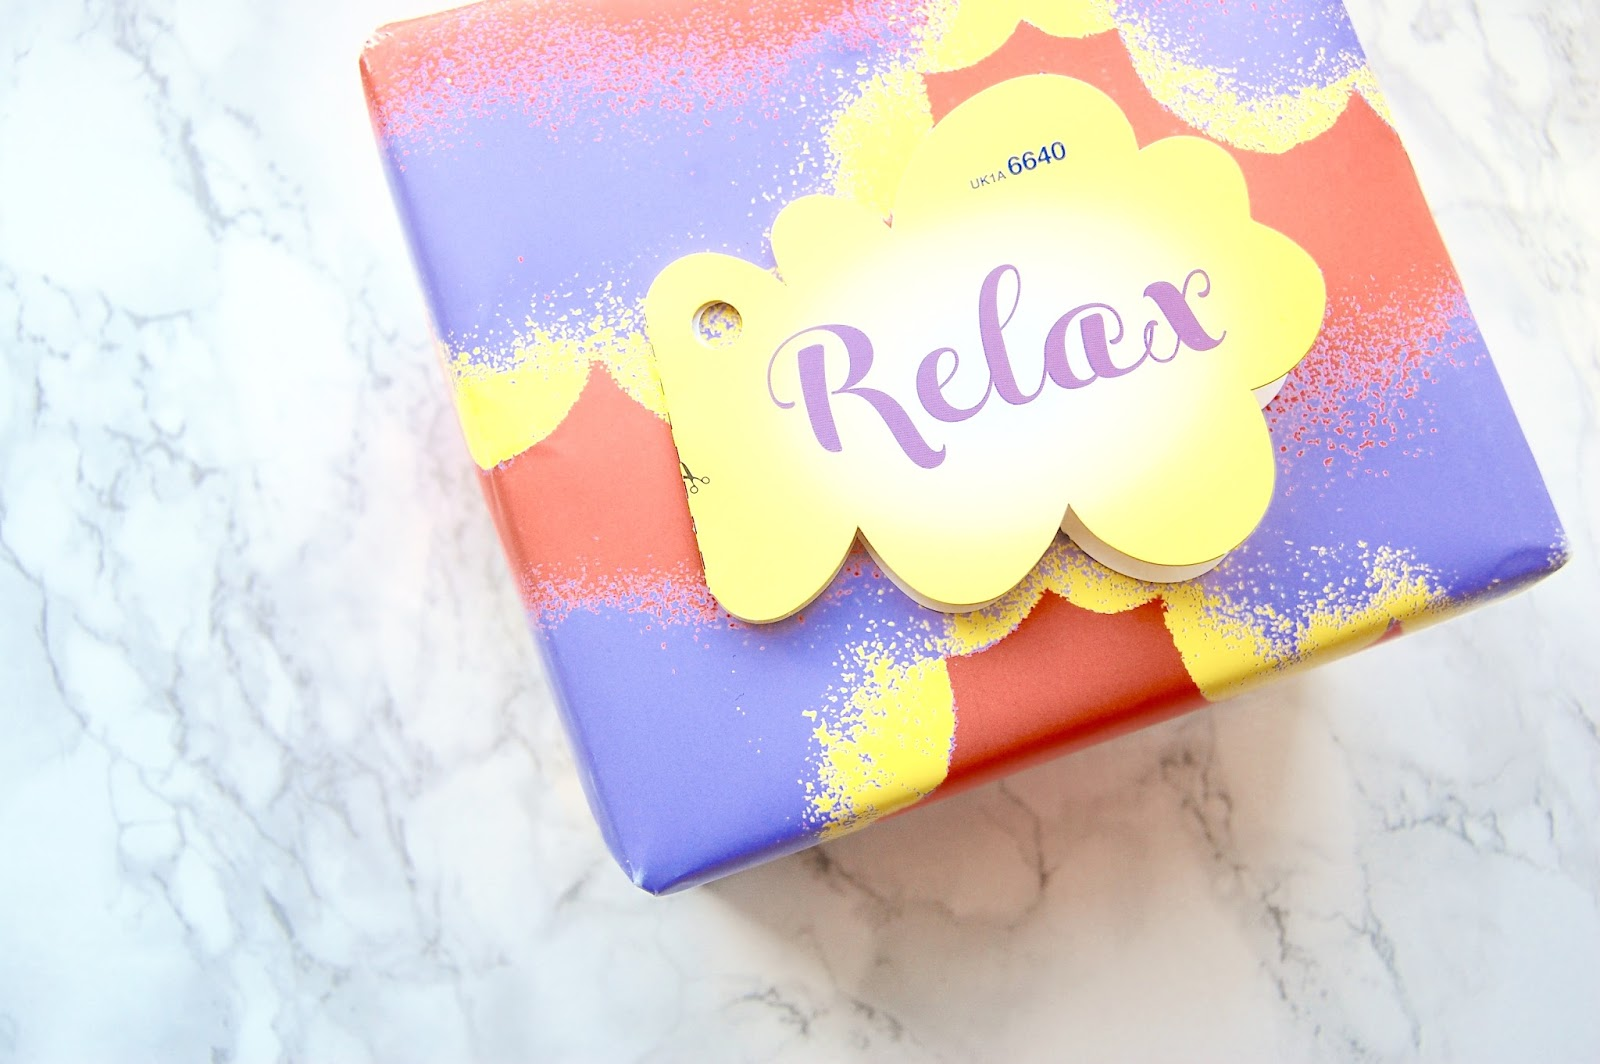 See my review of the Lush Relax Gift Box here